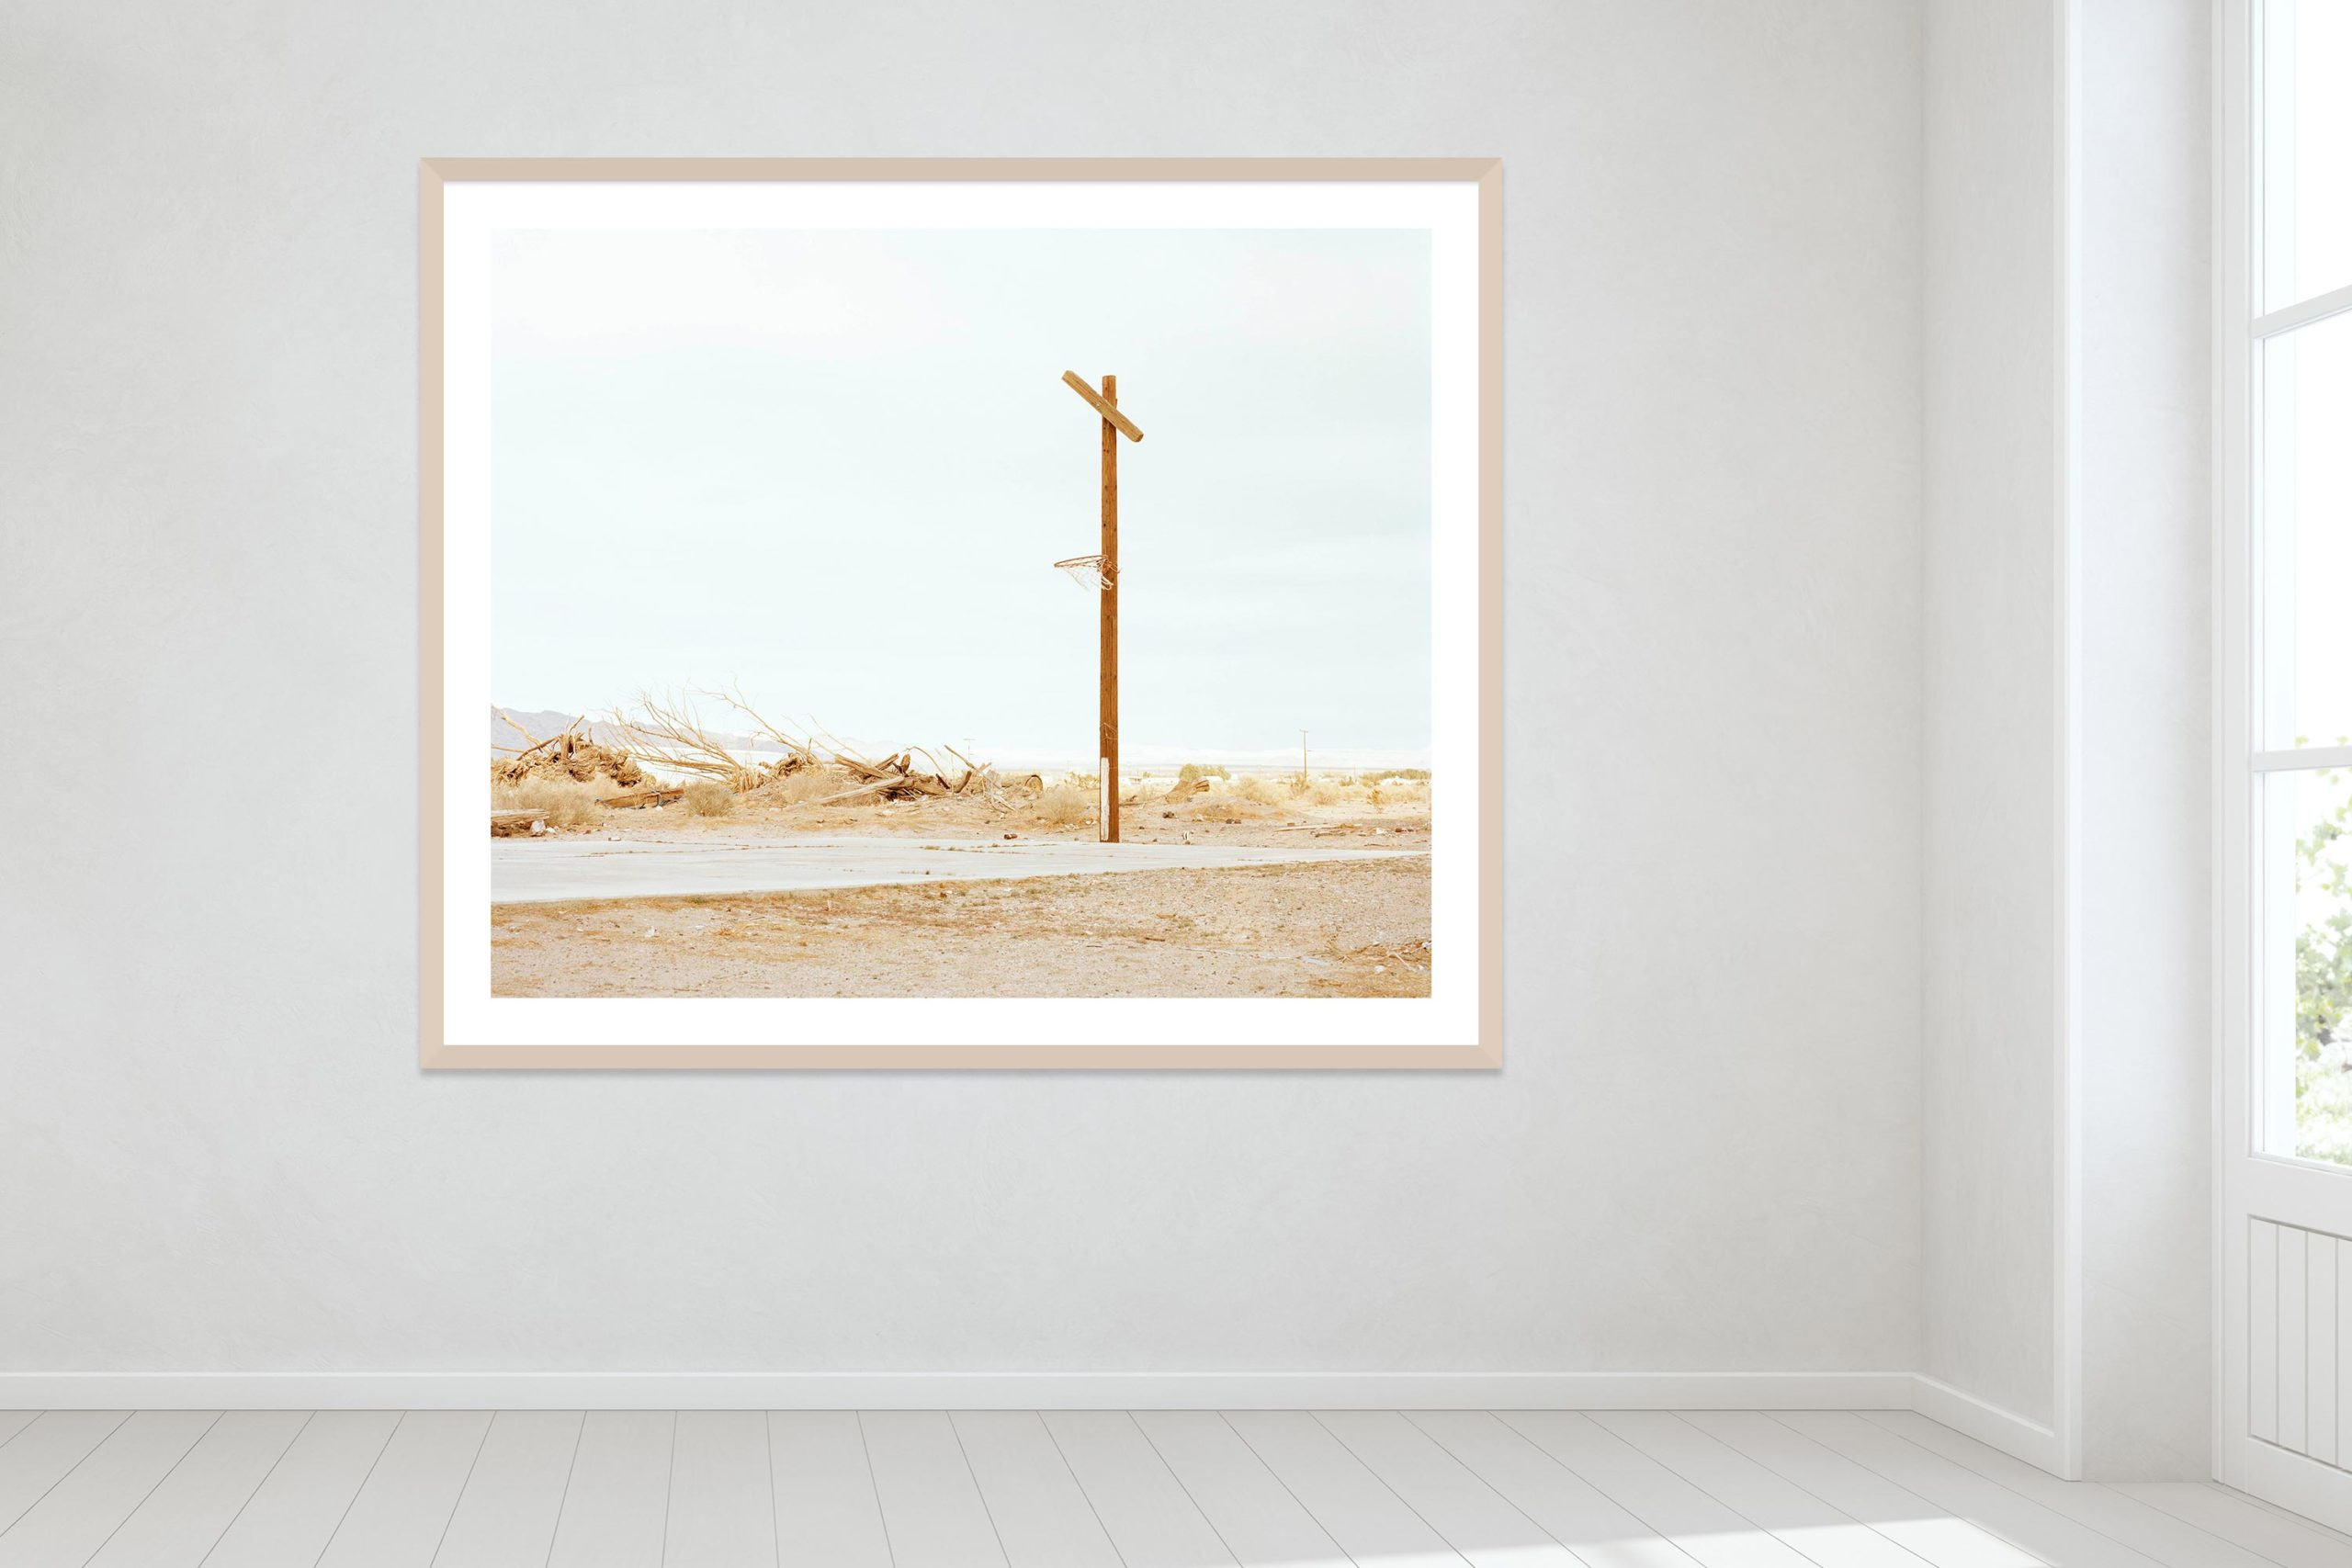 Hoop Dreams, Mojave Desert - Timber Frame - Oh Mojave Collection - Fine Art Photography by Toby Dixon